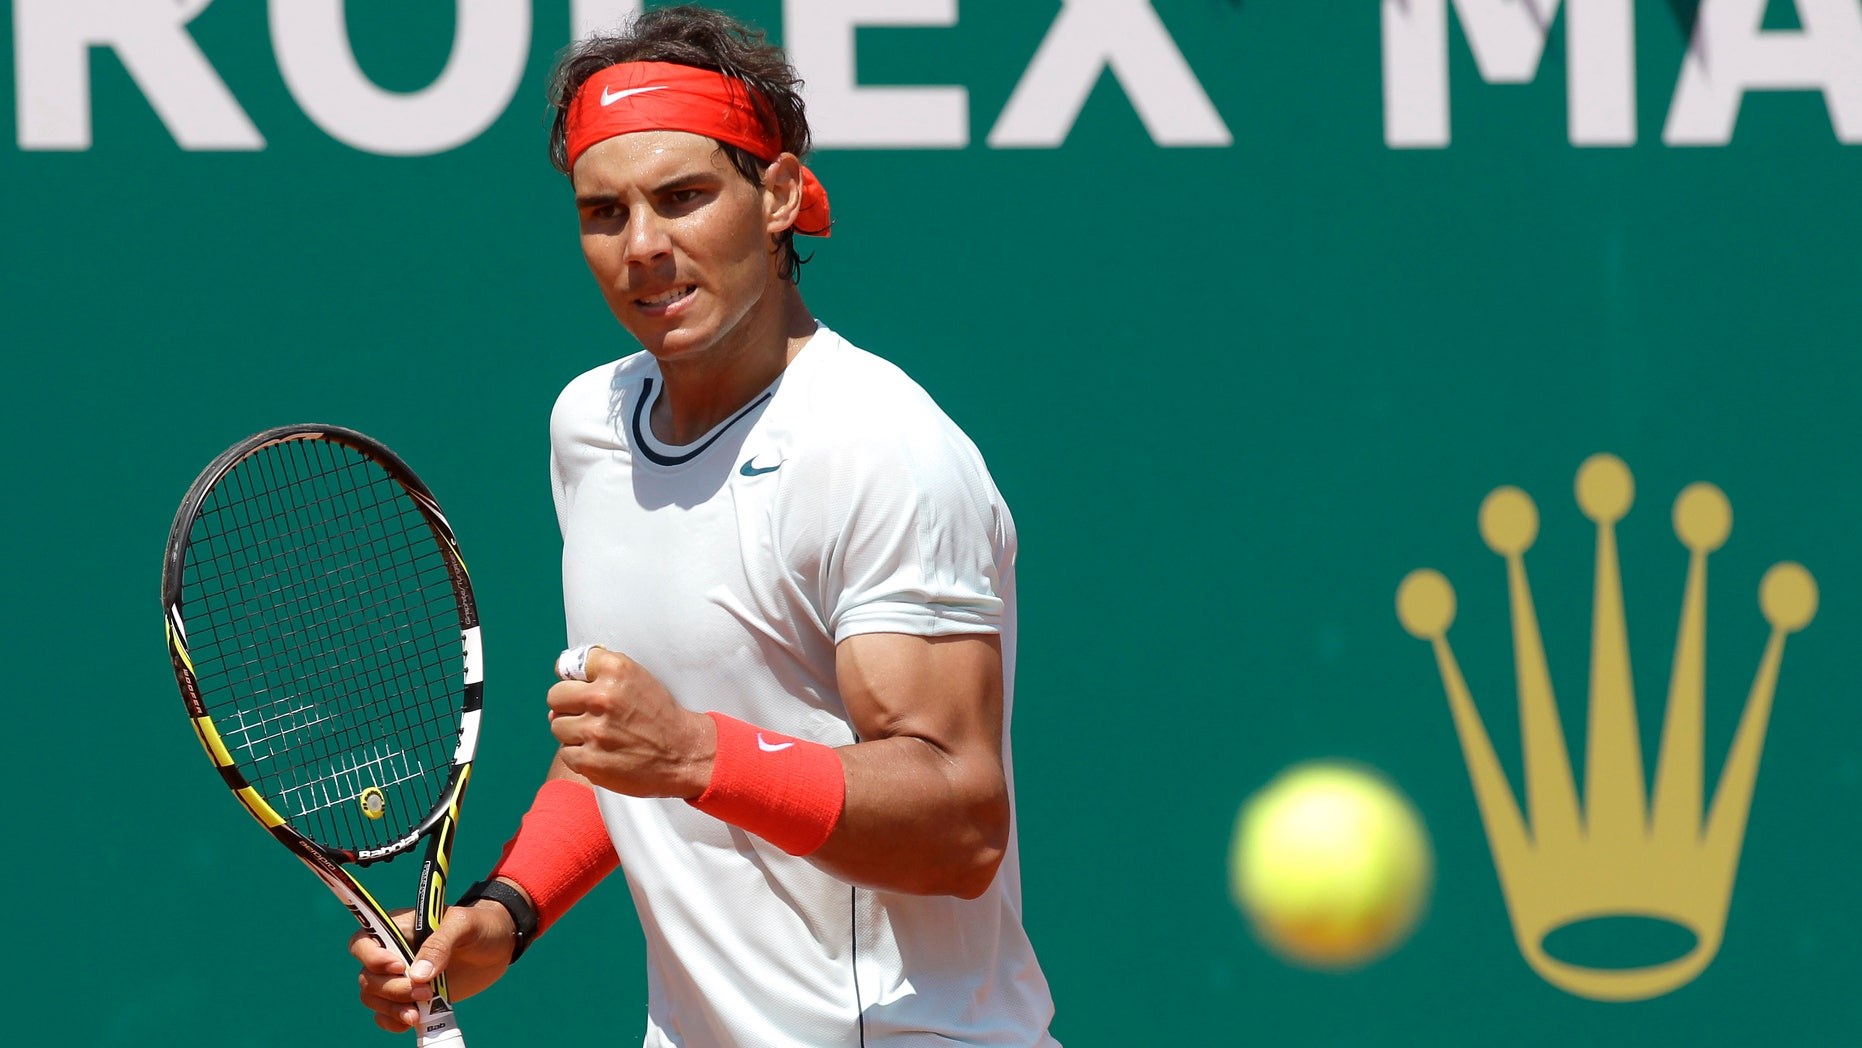 Spain's Rafael Nadal reacts during his match against Philipp Kohlschreiber of Germany at the Monte Carlo Tennis Masters tournament in Monaco, Thursday, April 18, 2013. (AP Photo/Lionel Cironneau)